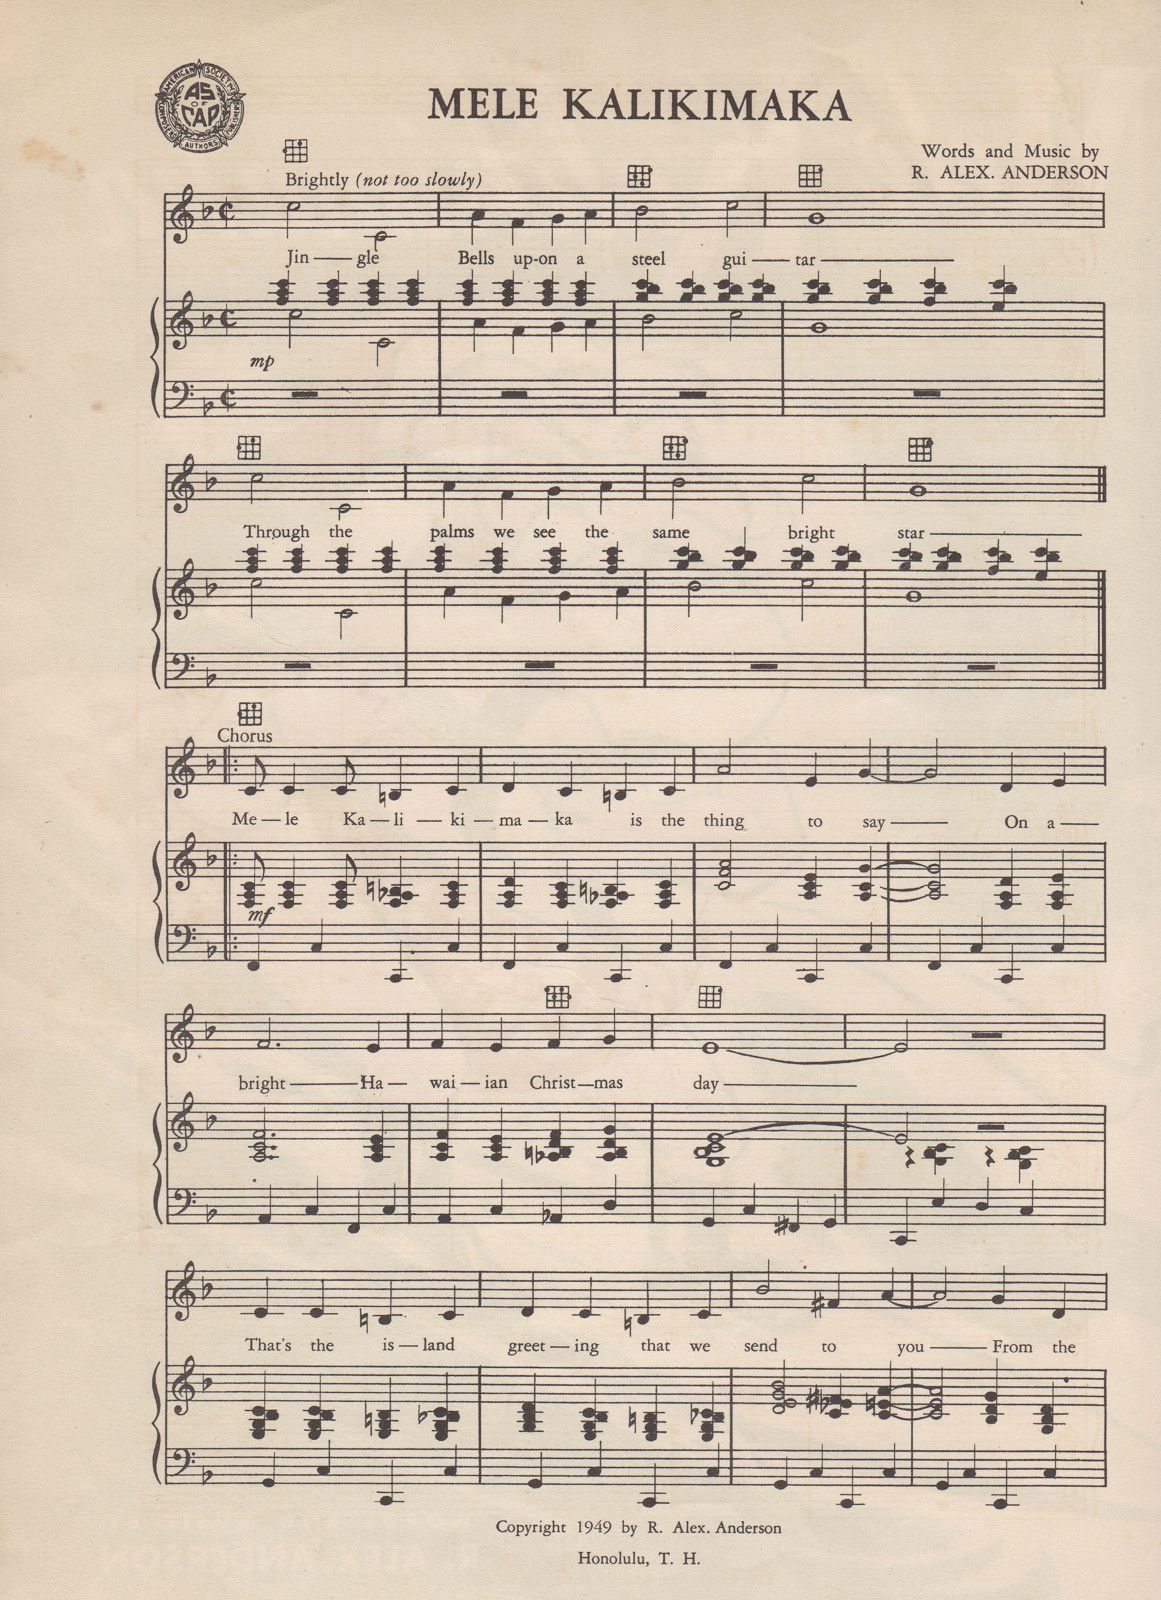 Hawaiian Sheet Music: \'Mele Kalikimaka\' | Pinterest | Christmas ...